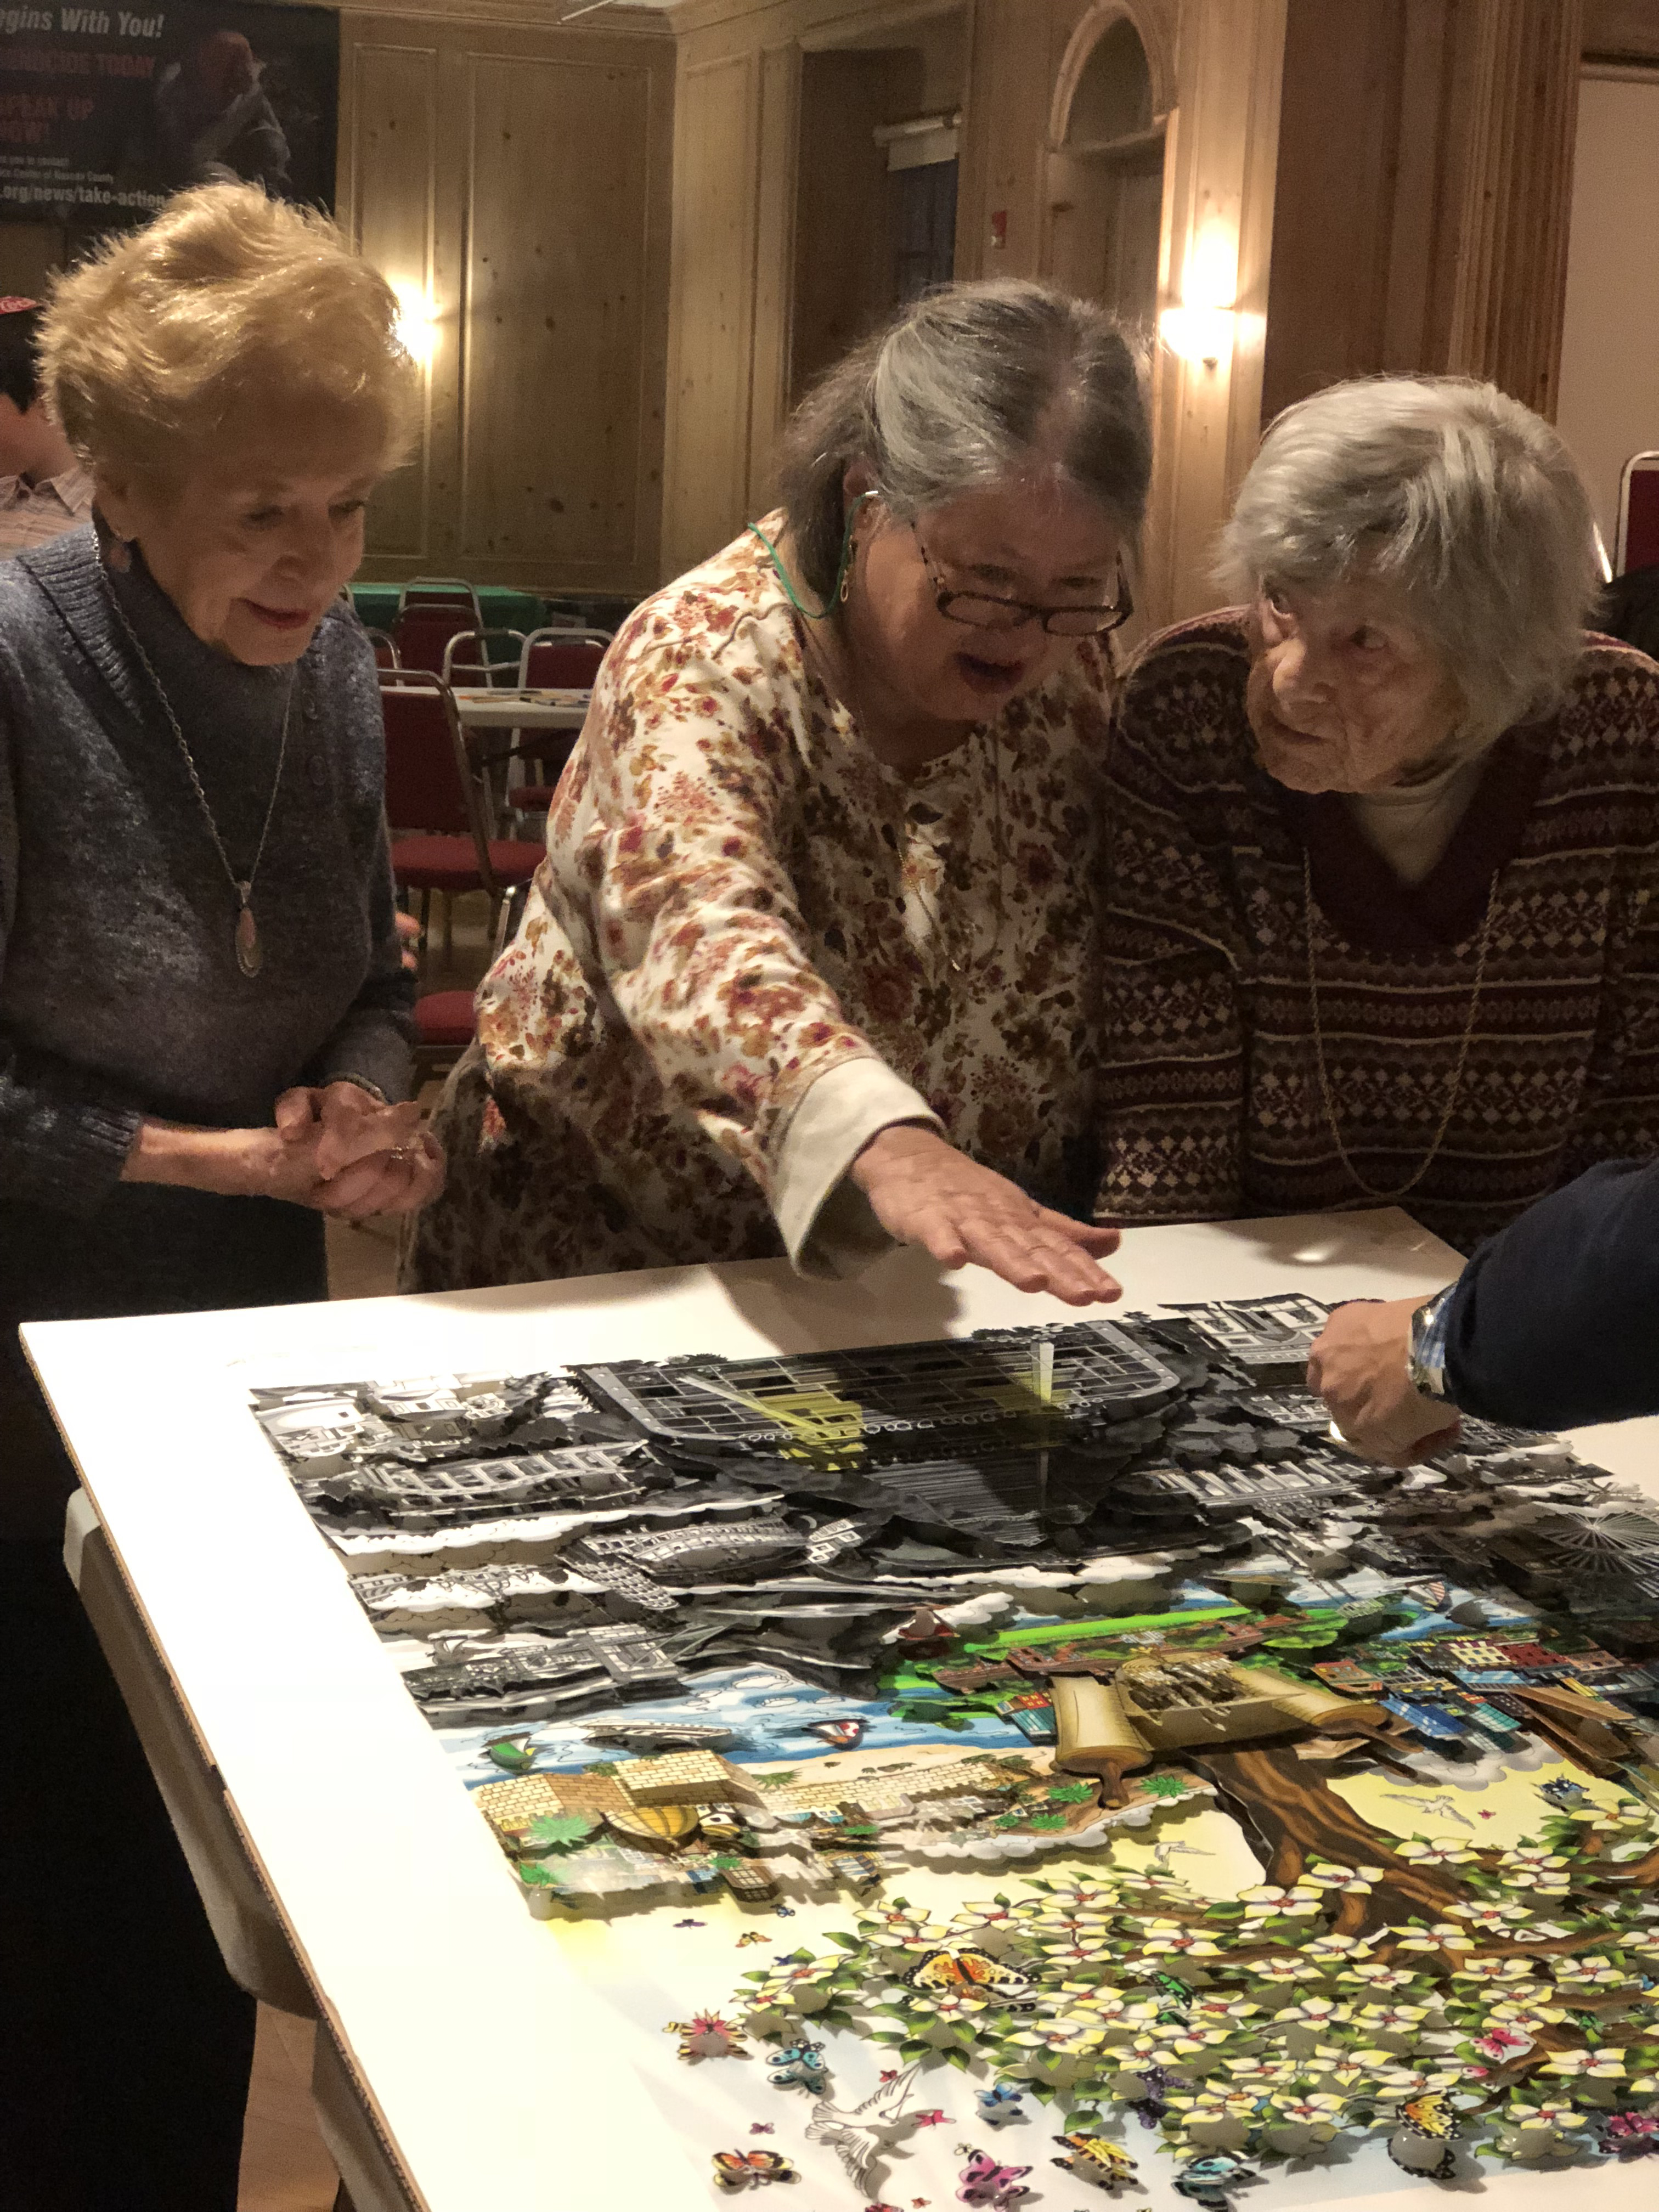 """Anita Weisbord, Ethel and Felice Katz work on recreating """"After the Darkness"""" 3d pop art piece by Charles Fazzino"""